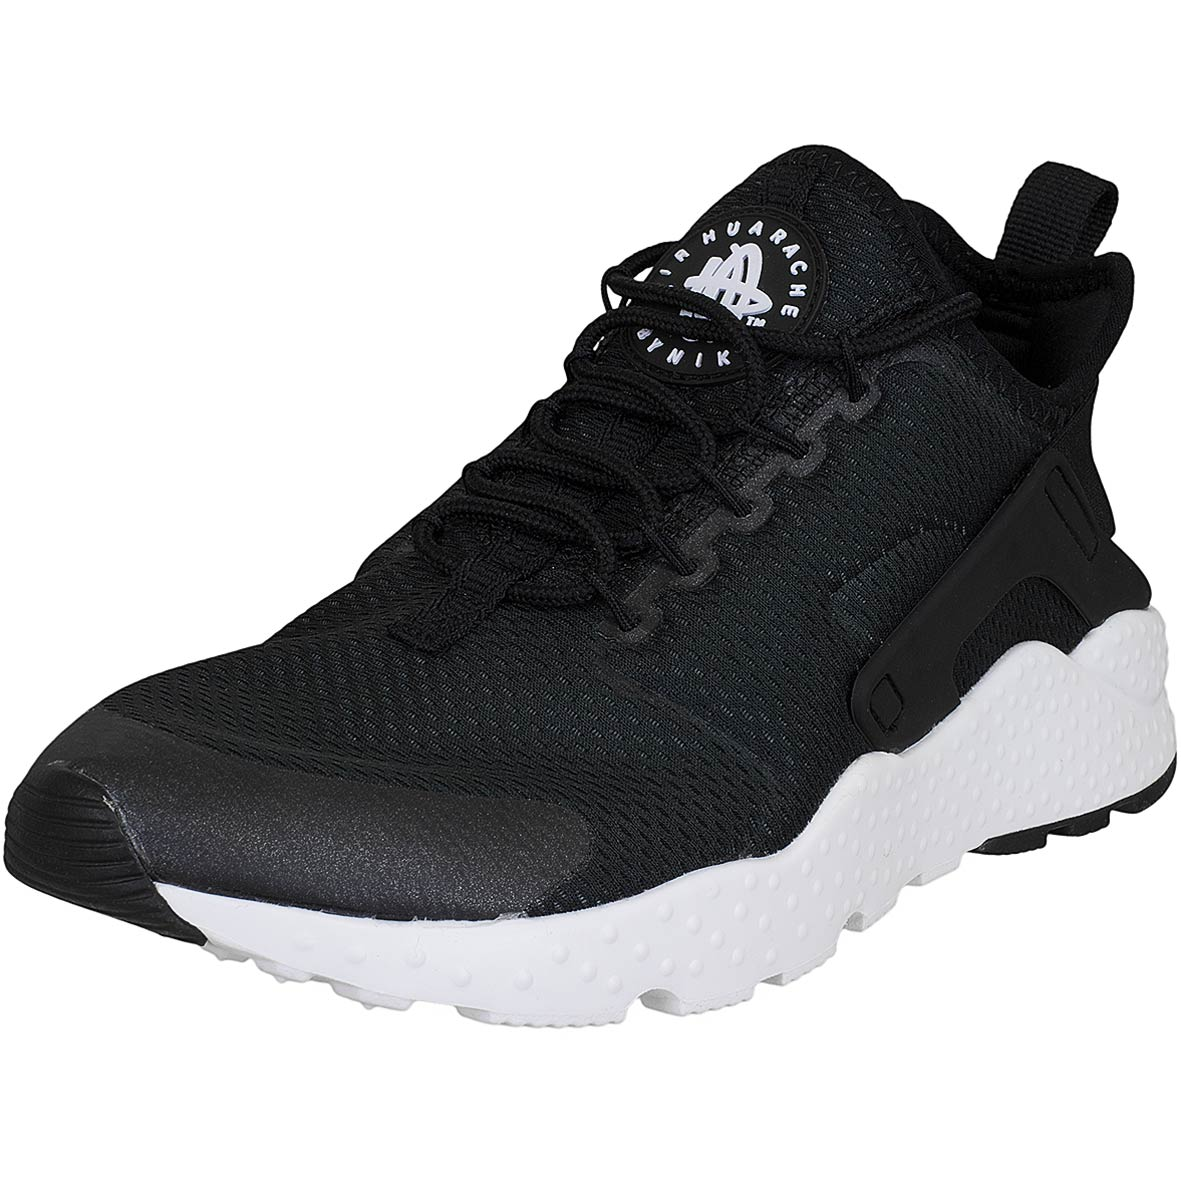 official photos 2121c 24d7b Nike Damen Sneaker Air Huarache Run Ultra schwarzschwarz